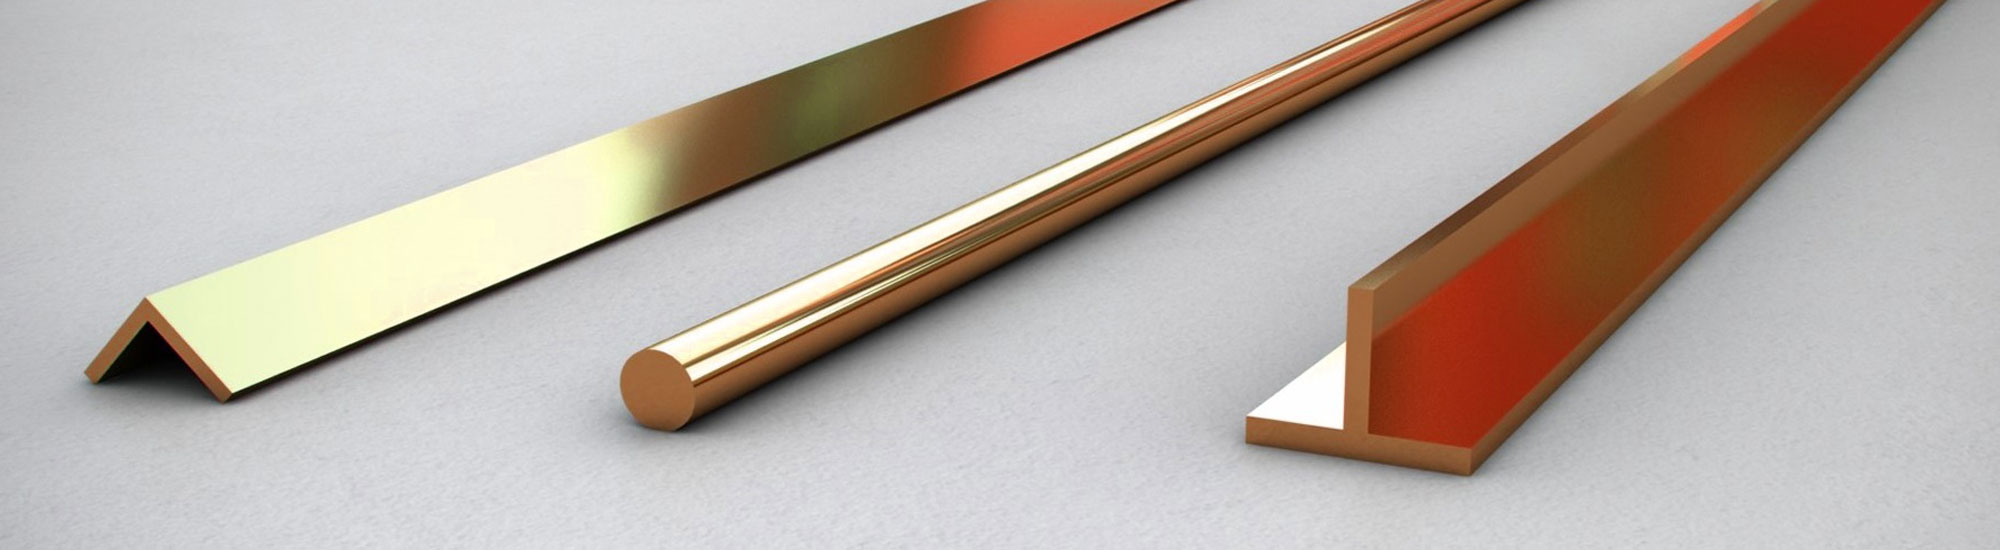 Copper Nickel Round Bar Suppliers